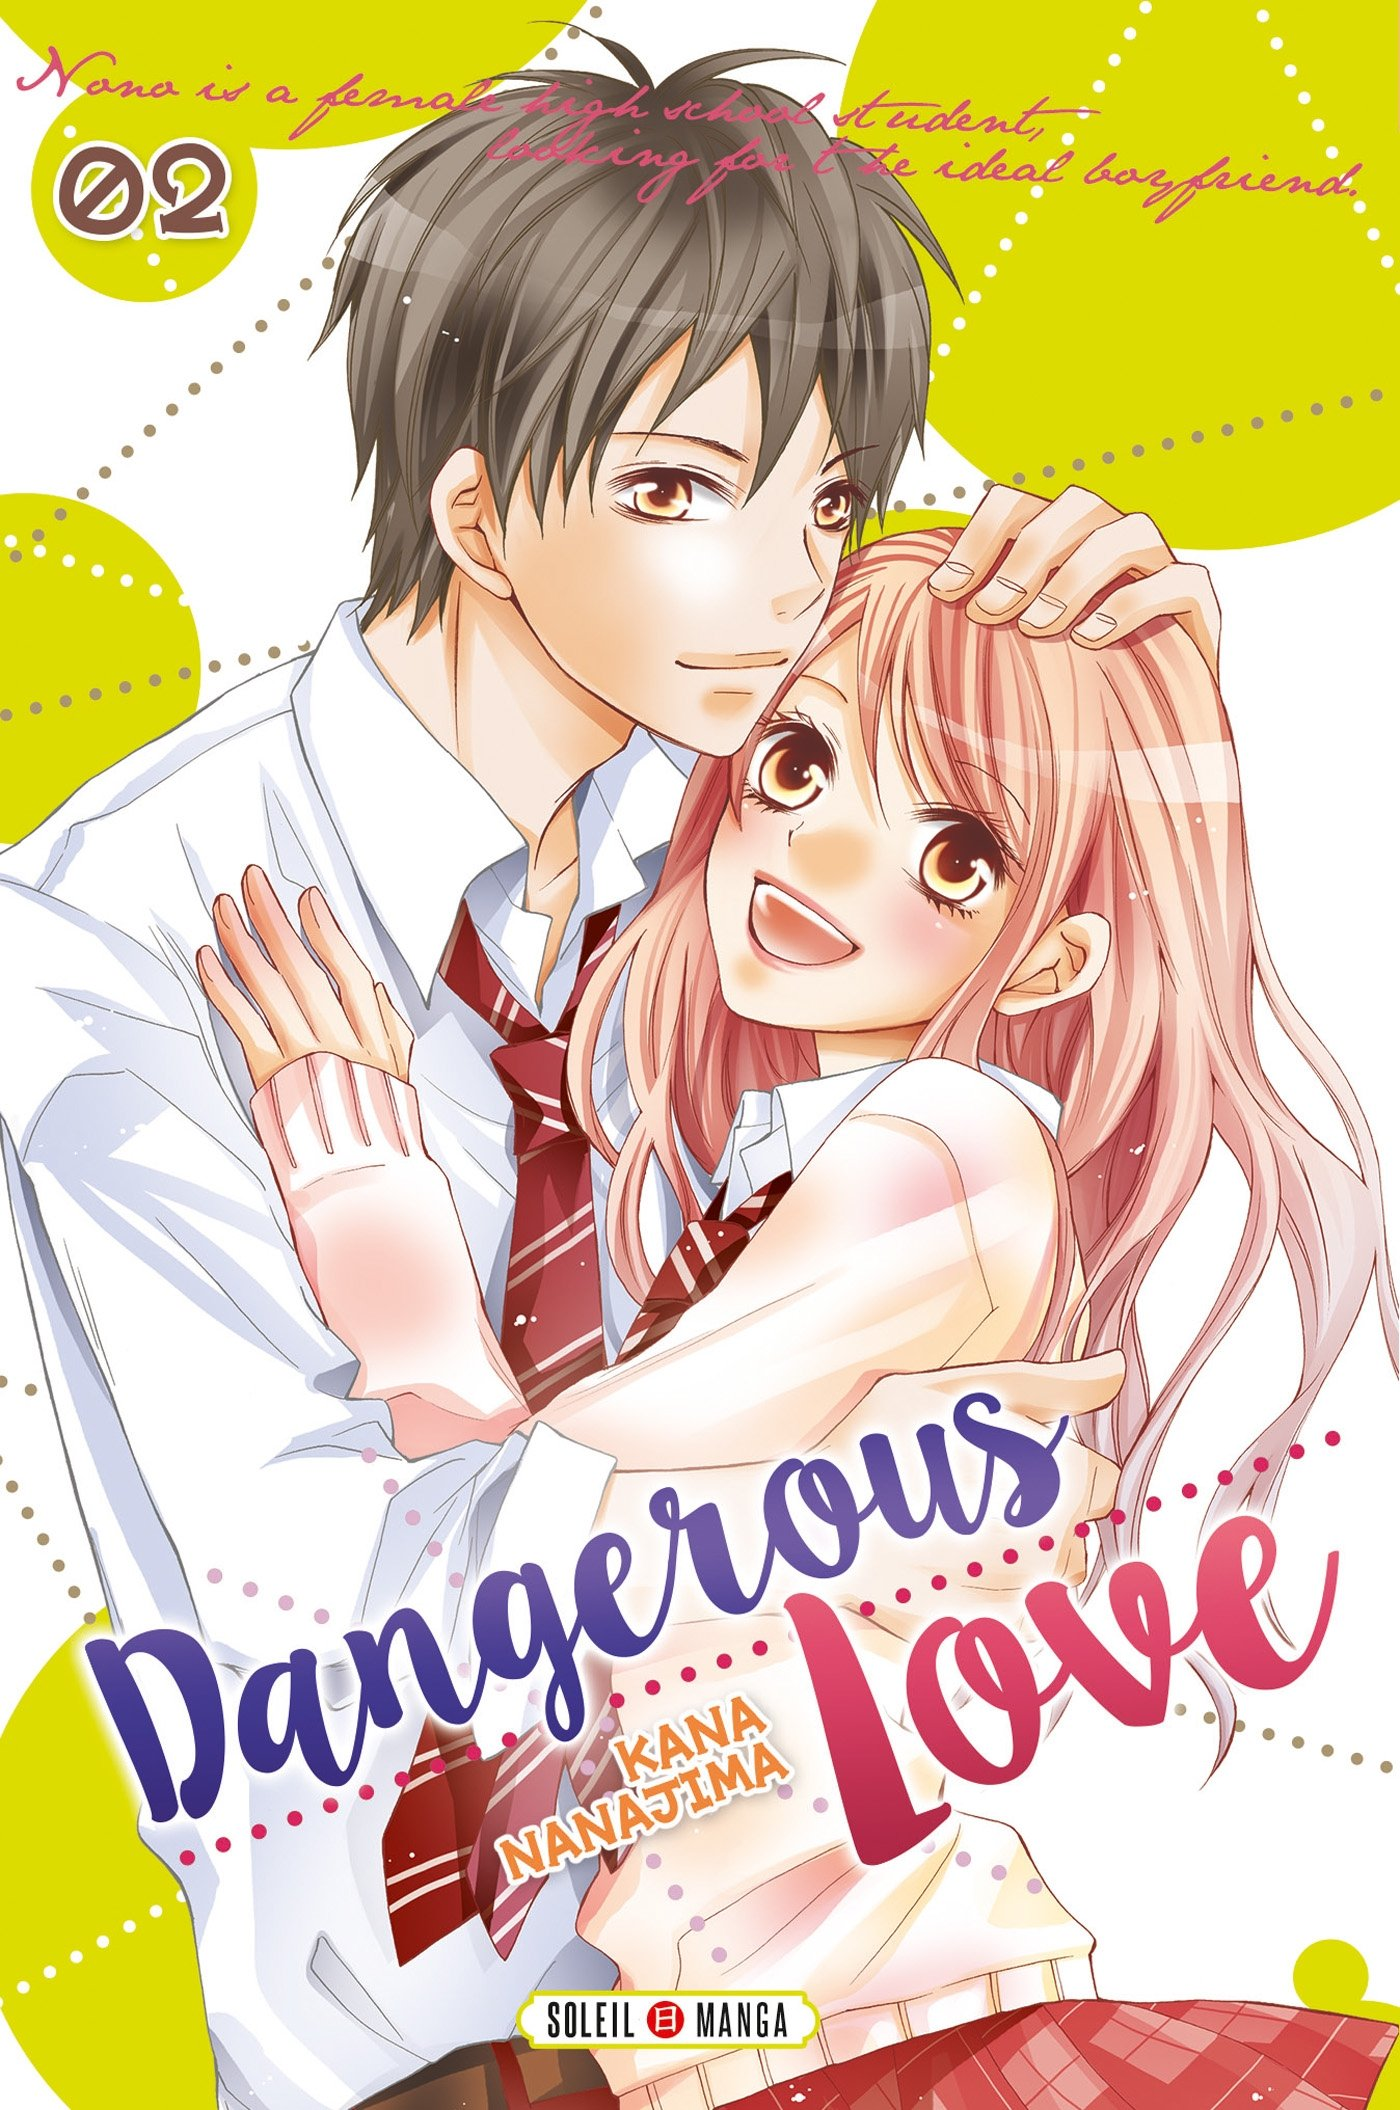 dangerous-love-manga-volume-2-simple-237583.jpg